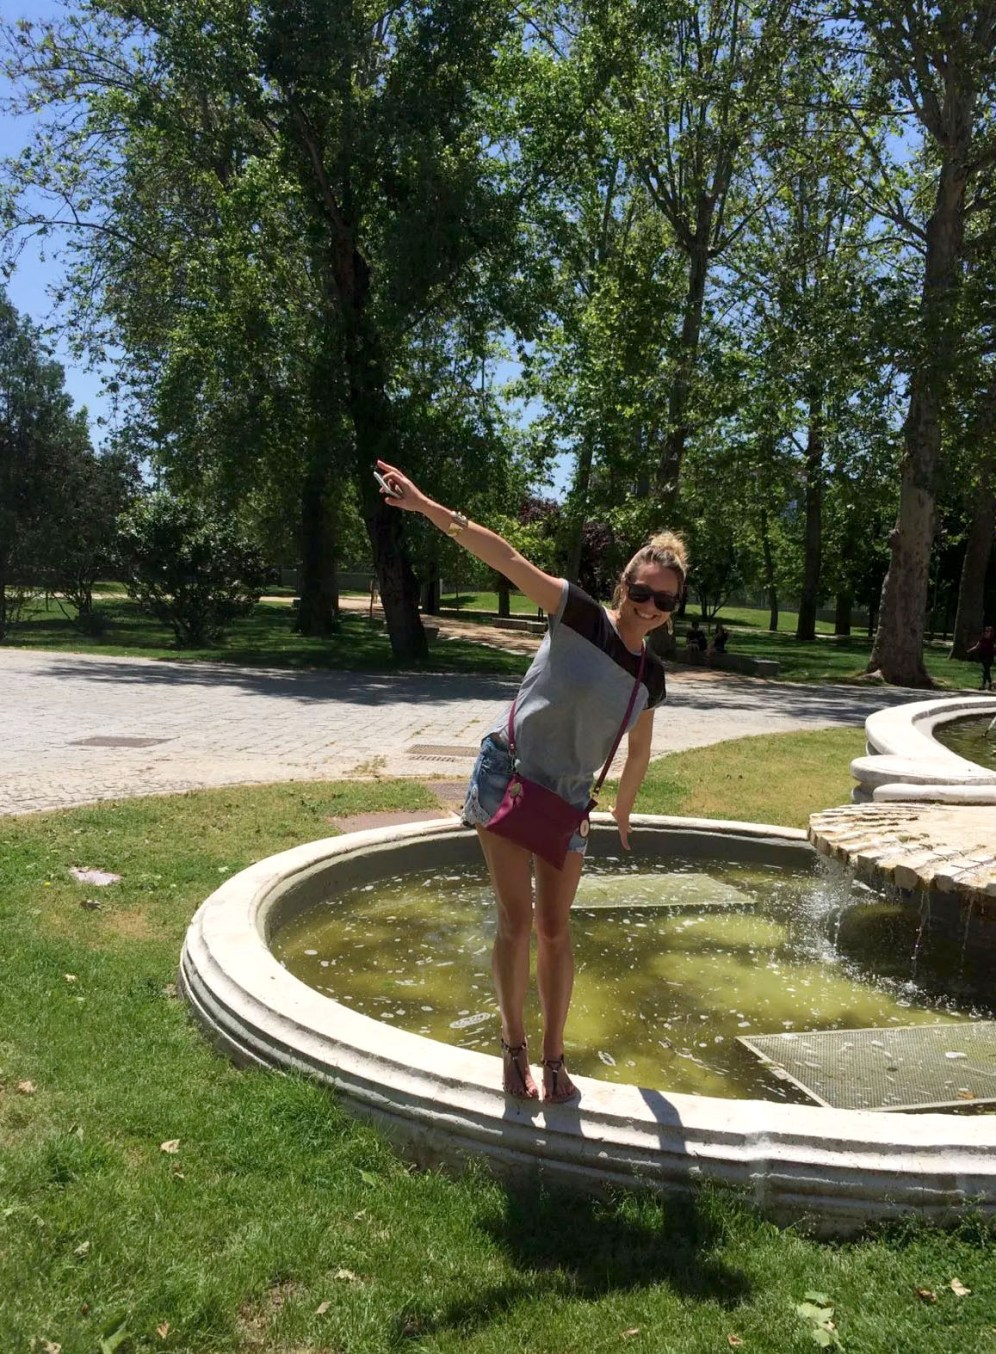 Madrid Sunshine Casa do Campo Walking Park Birthday Fountain Sound of Music